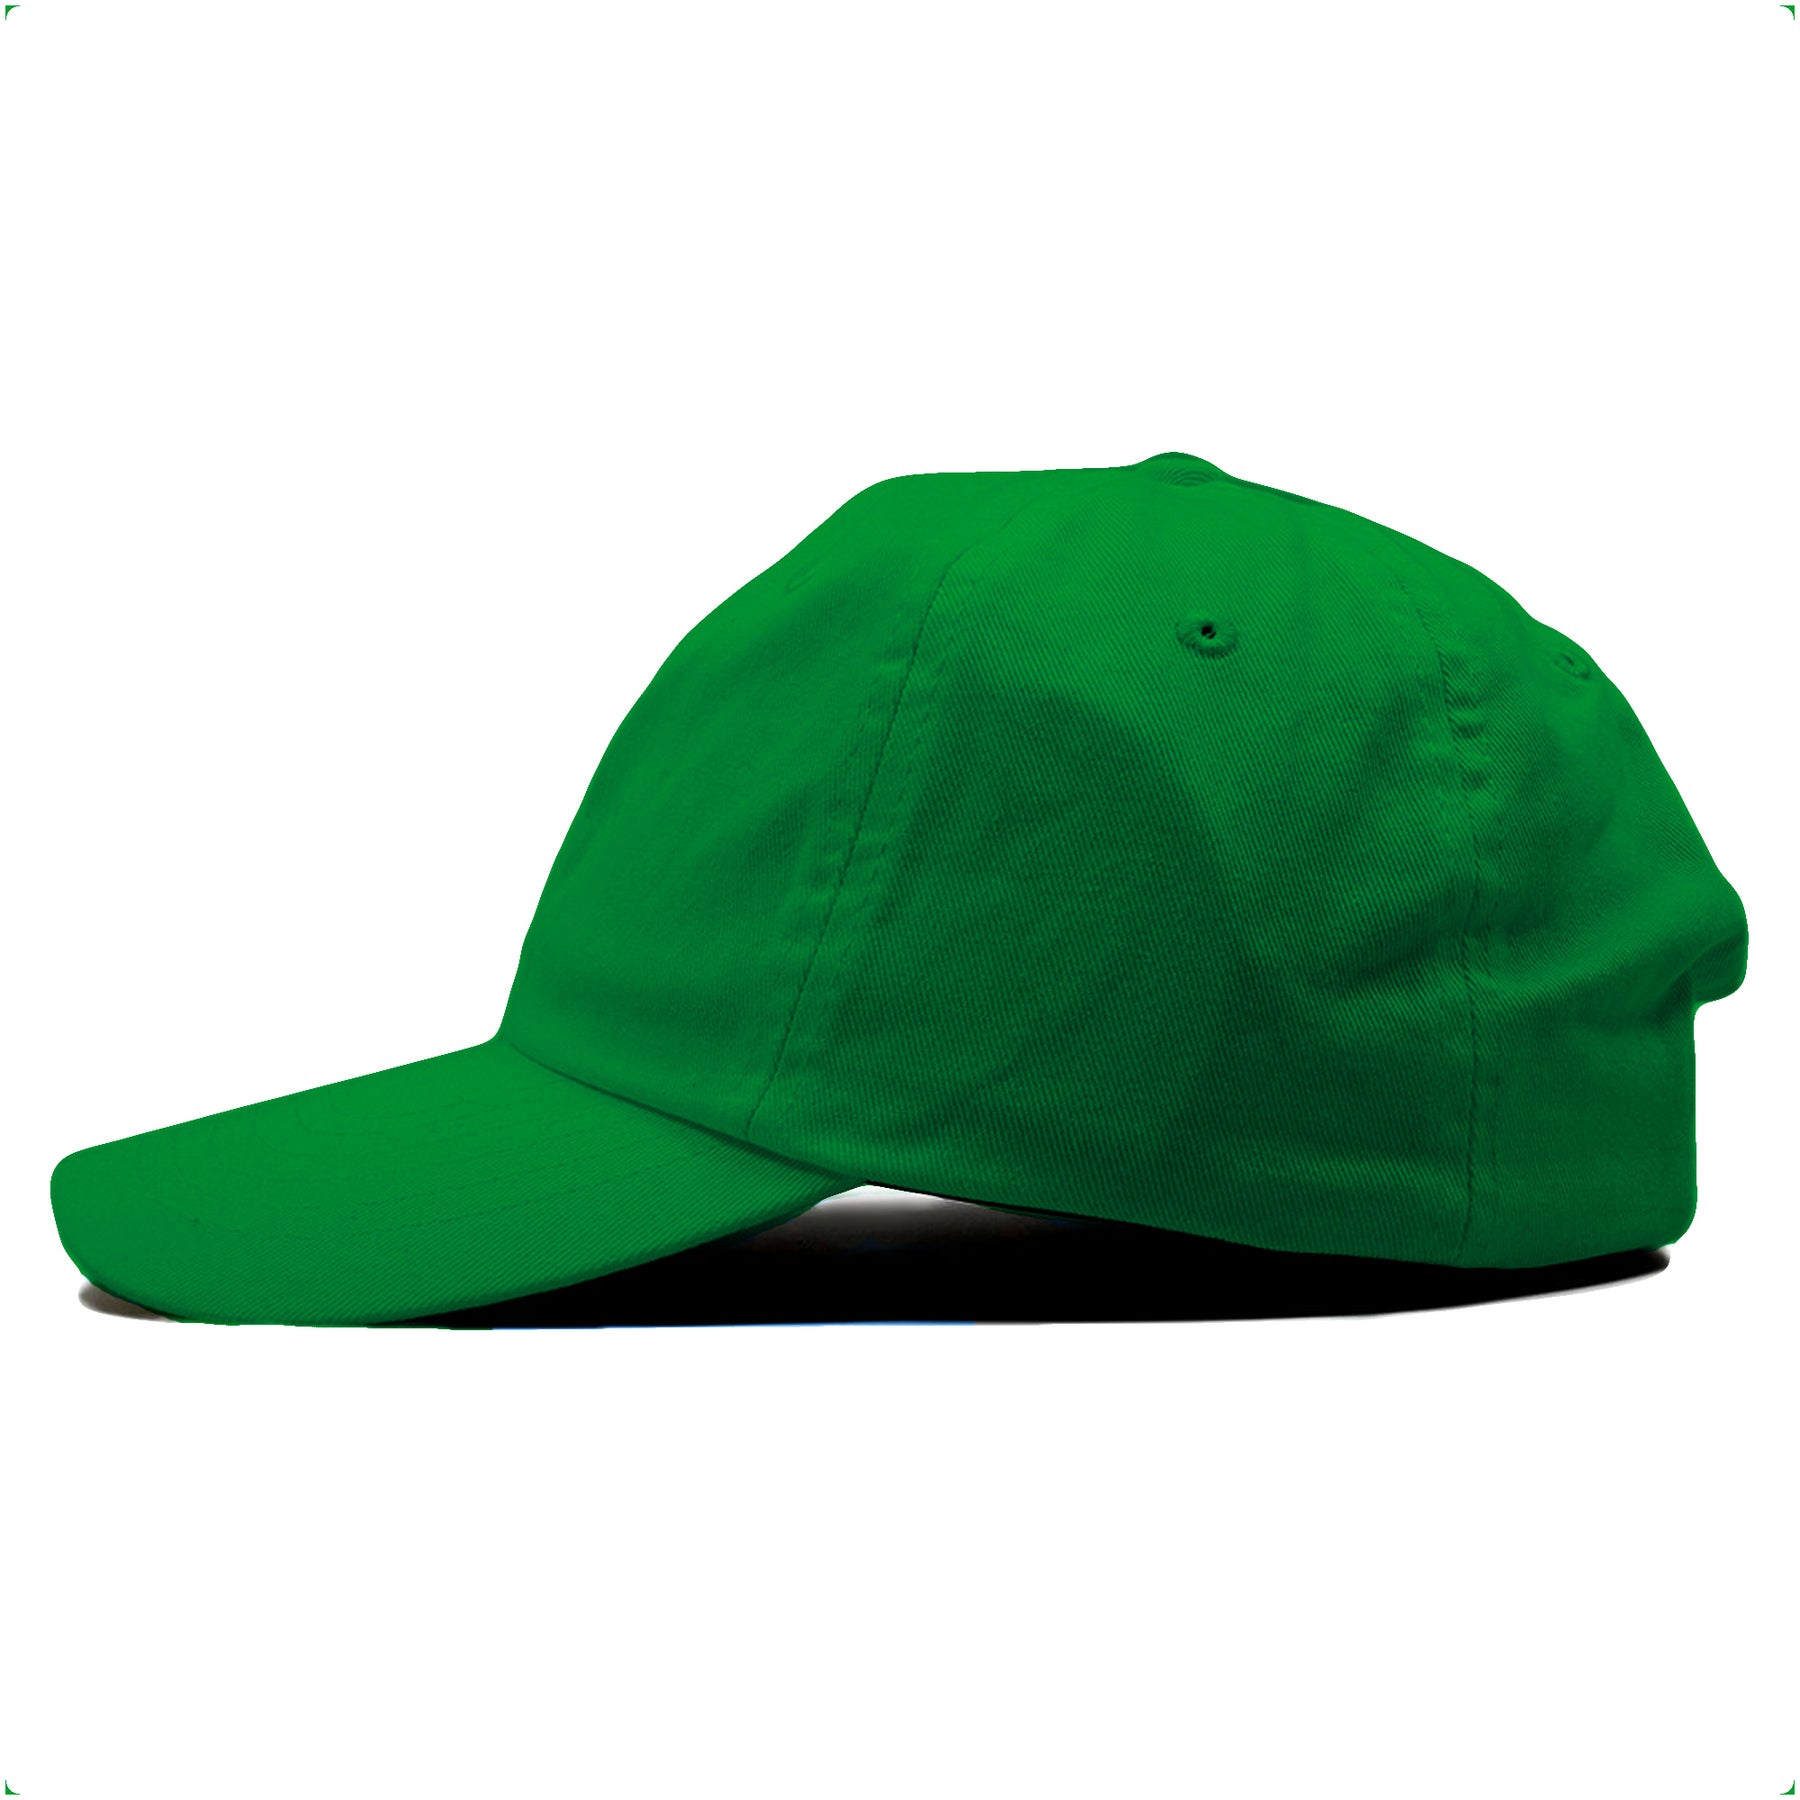 0b3e35225c2f8 ... The blank kelly green dad hat is solid kelly green and made of 100%  cotton ...